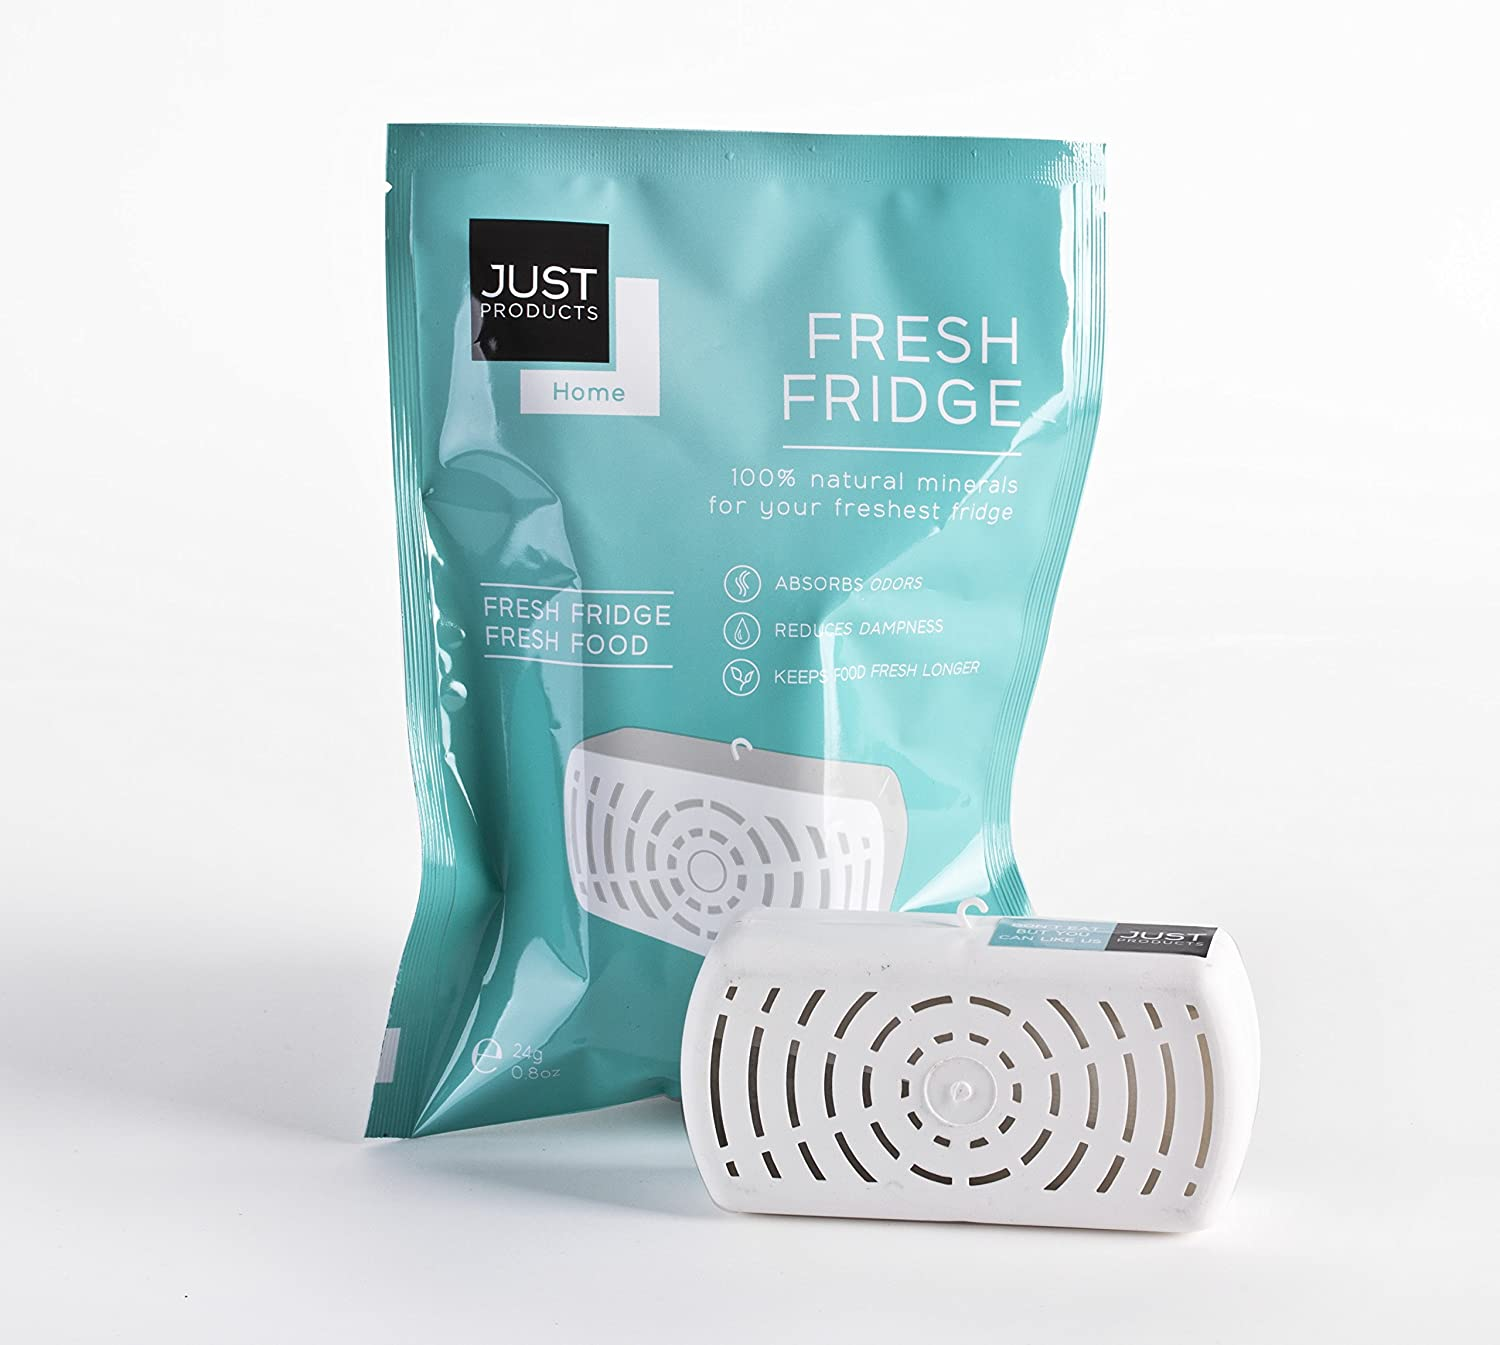 Fridge deodorizer and air freshener - Fresh refrigerator air purifier and filter - Removes and eliminates odors and moisture Just Products